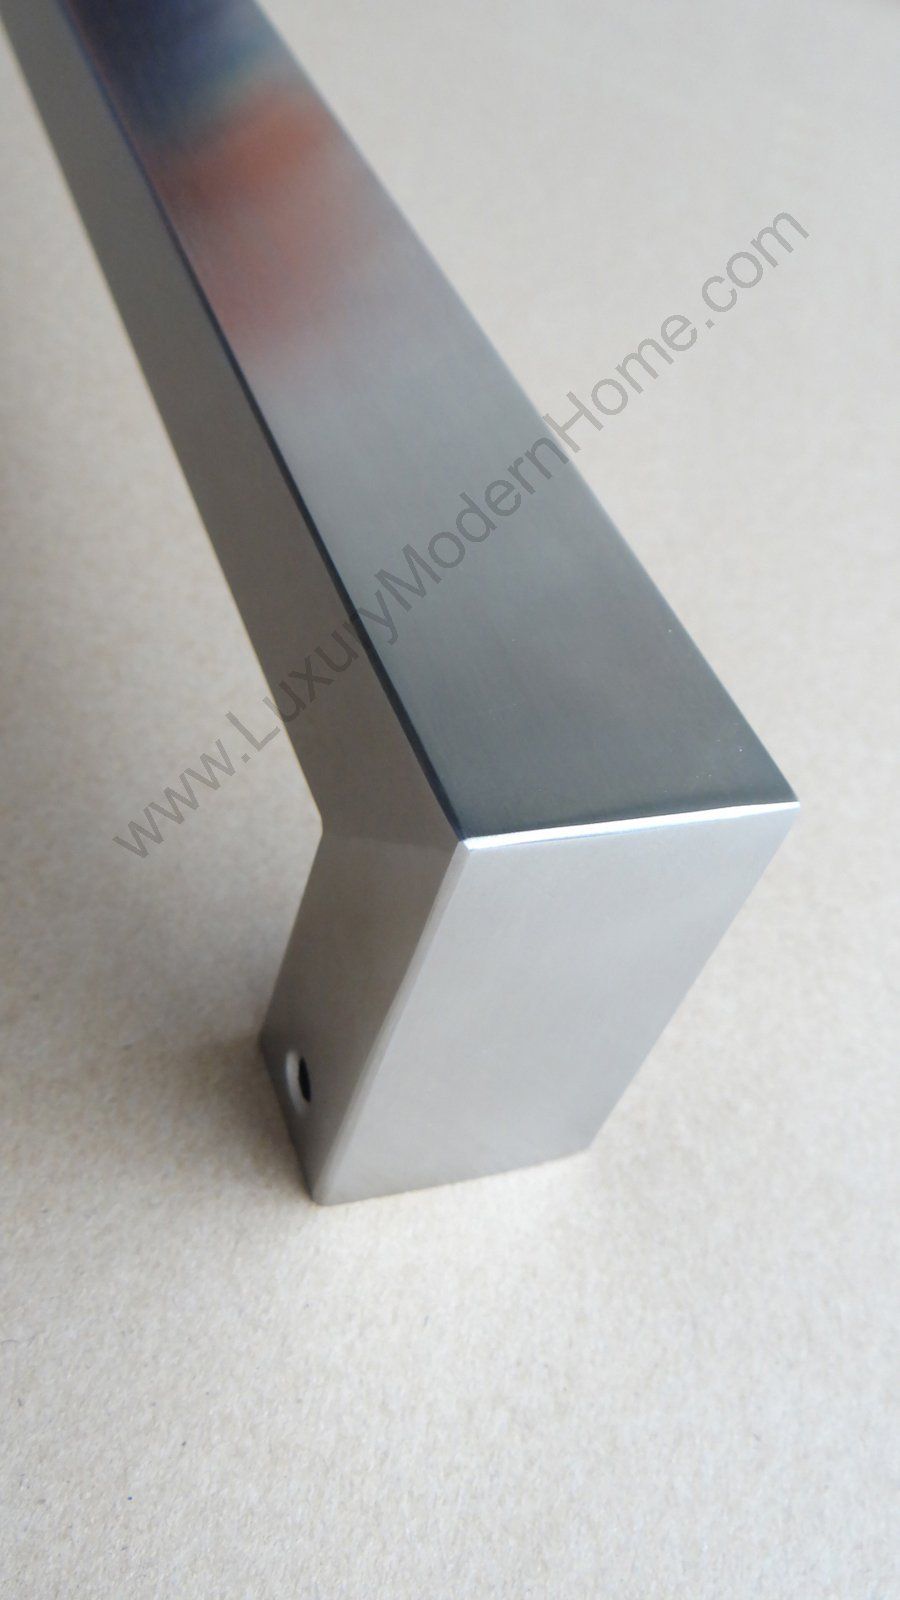 dh - 16'' Rectangular Tube Pull Shower Door Handle Square Stainless Steel 304